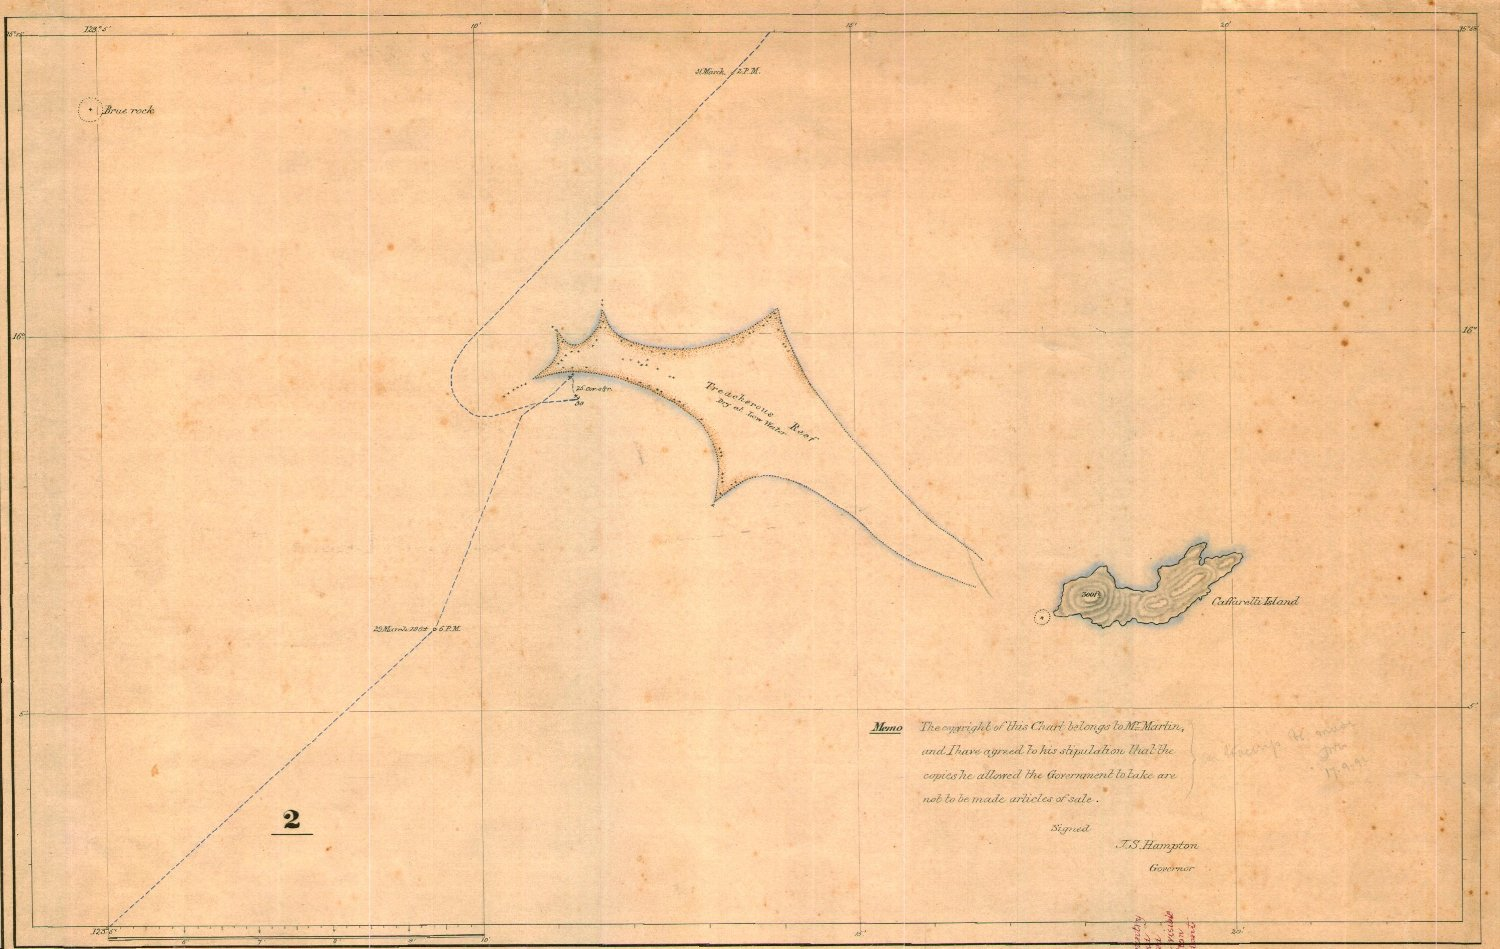 Journals and reports of two voyages to the glenelg river and the chart 2caffarelli island and treacherous reef nvjuhfo Images